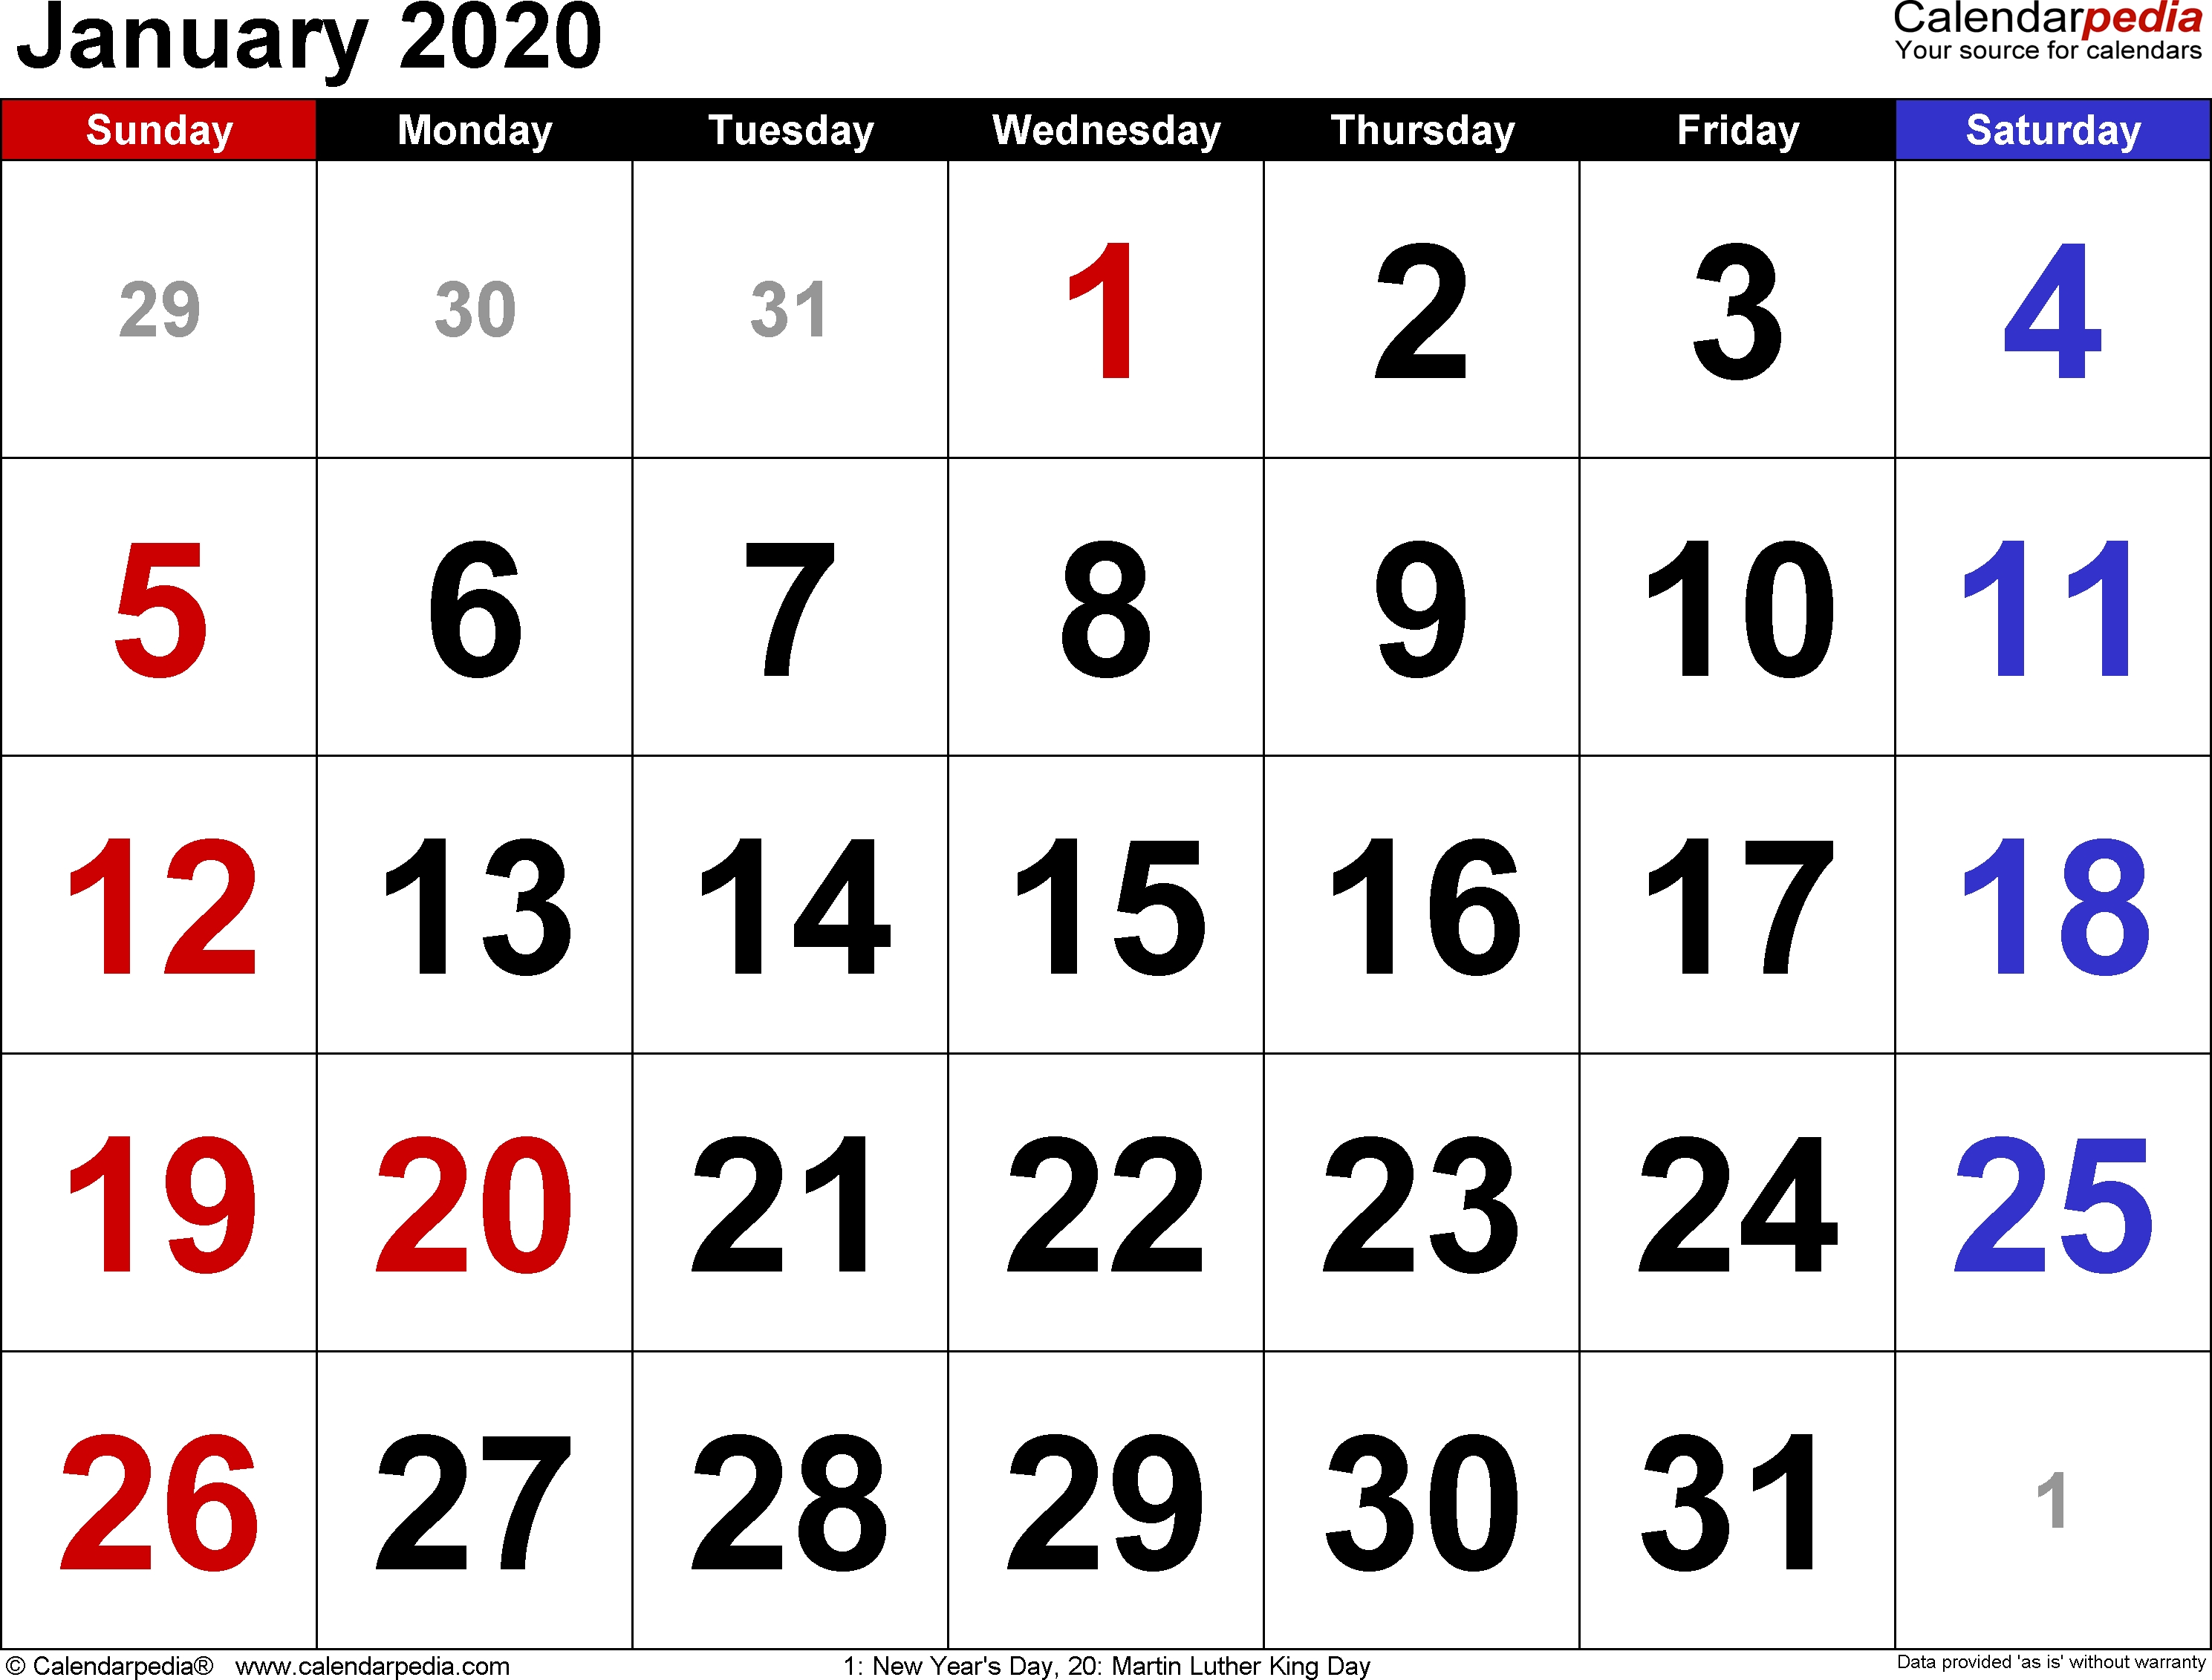 January 2020 Calendars For Word, Excel & Pdf-January 2020 Calendar Kalnirnay